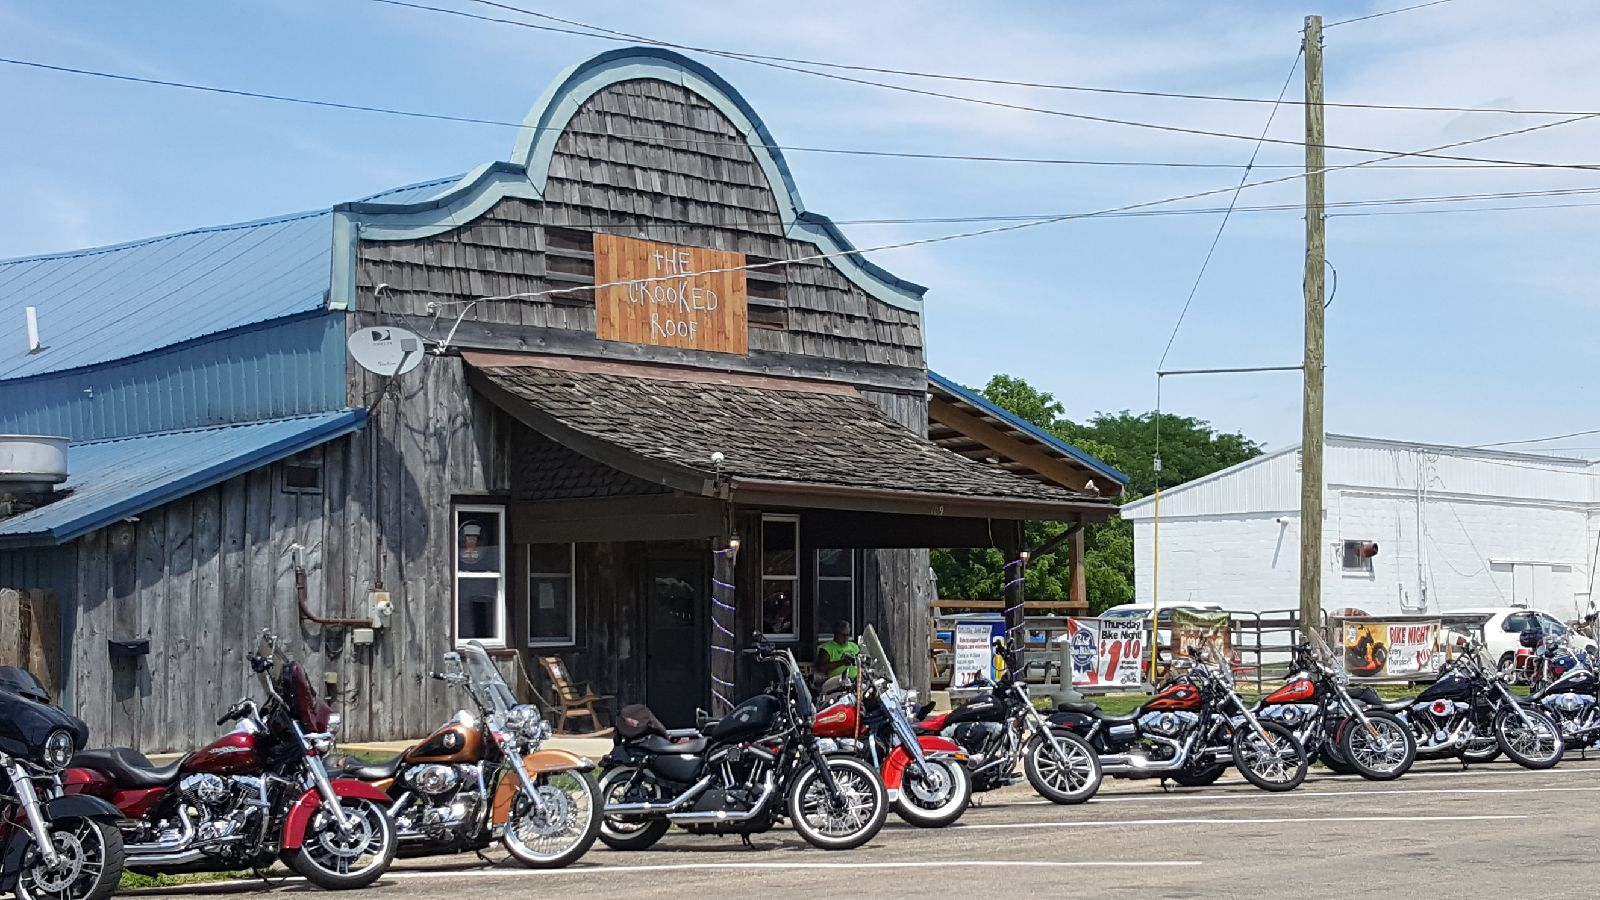 The_crooked_roof_bikes1 (1).jpg